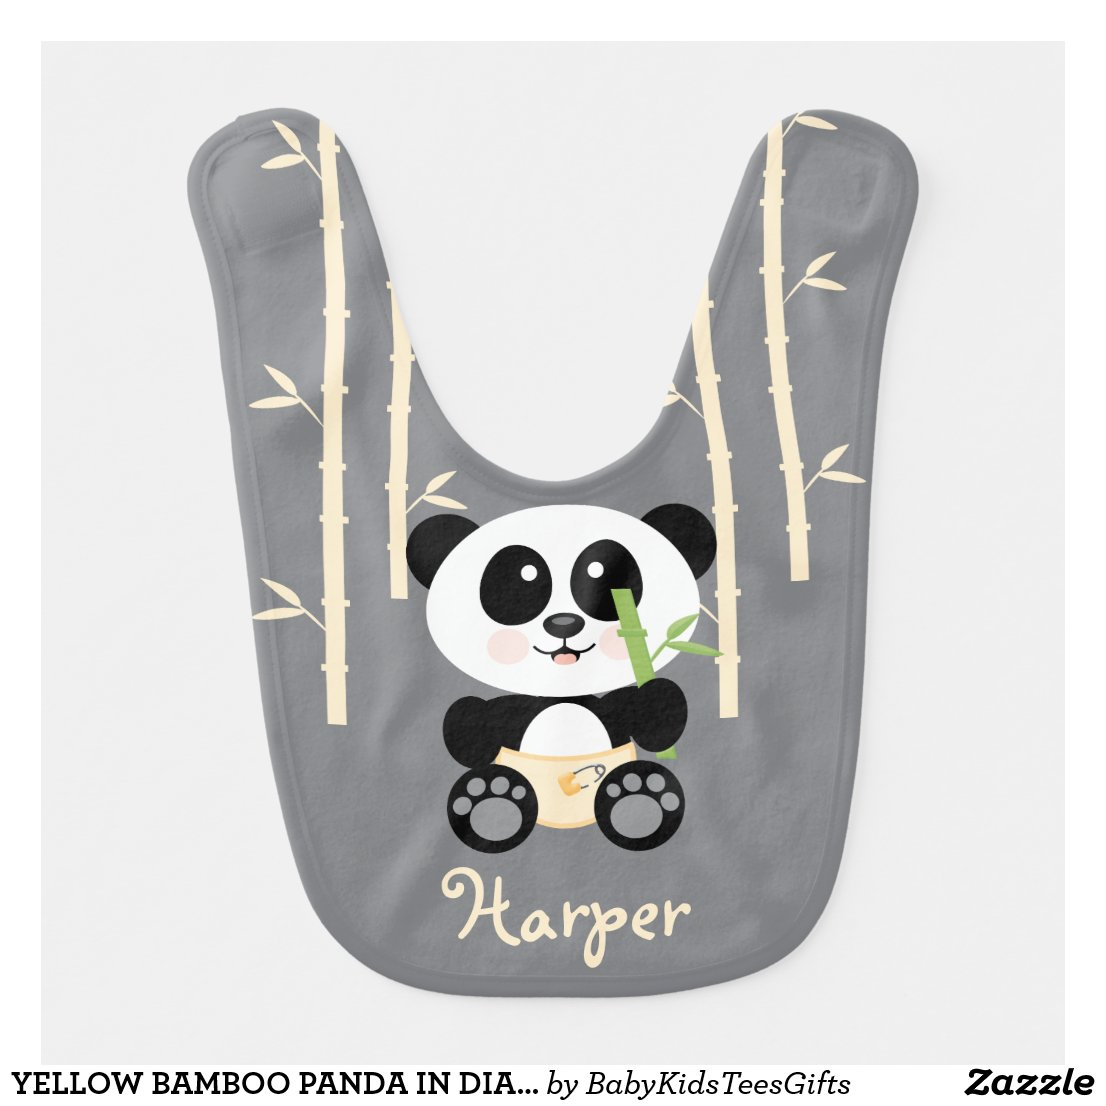 YELLOW BAMBOO PANDA IN DIAPERS